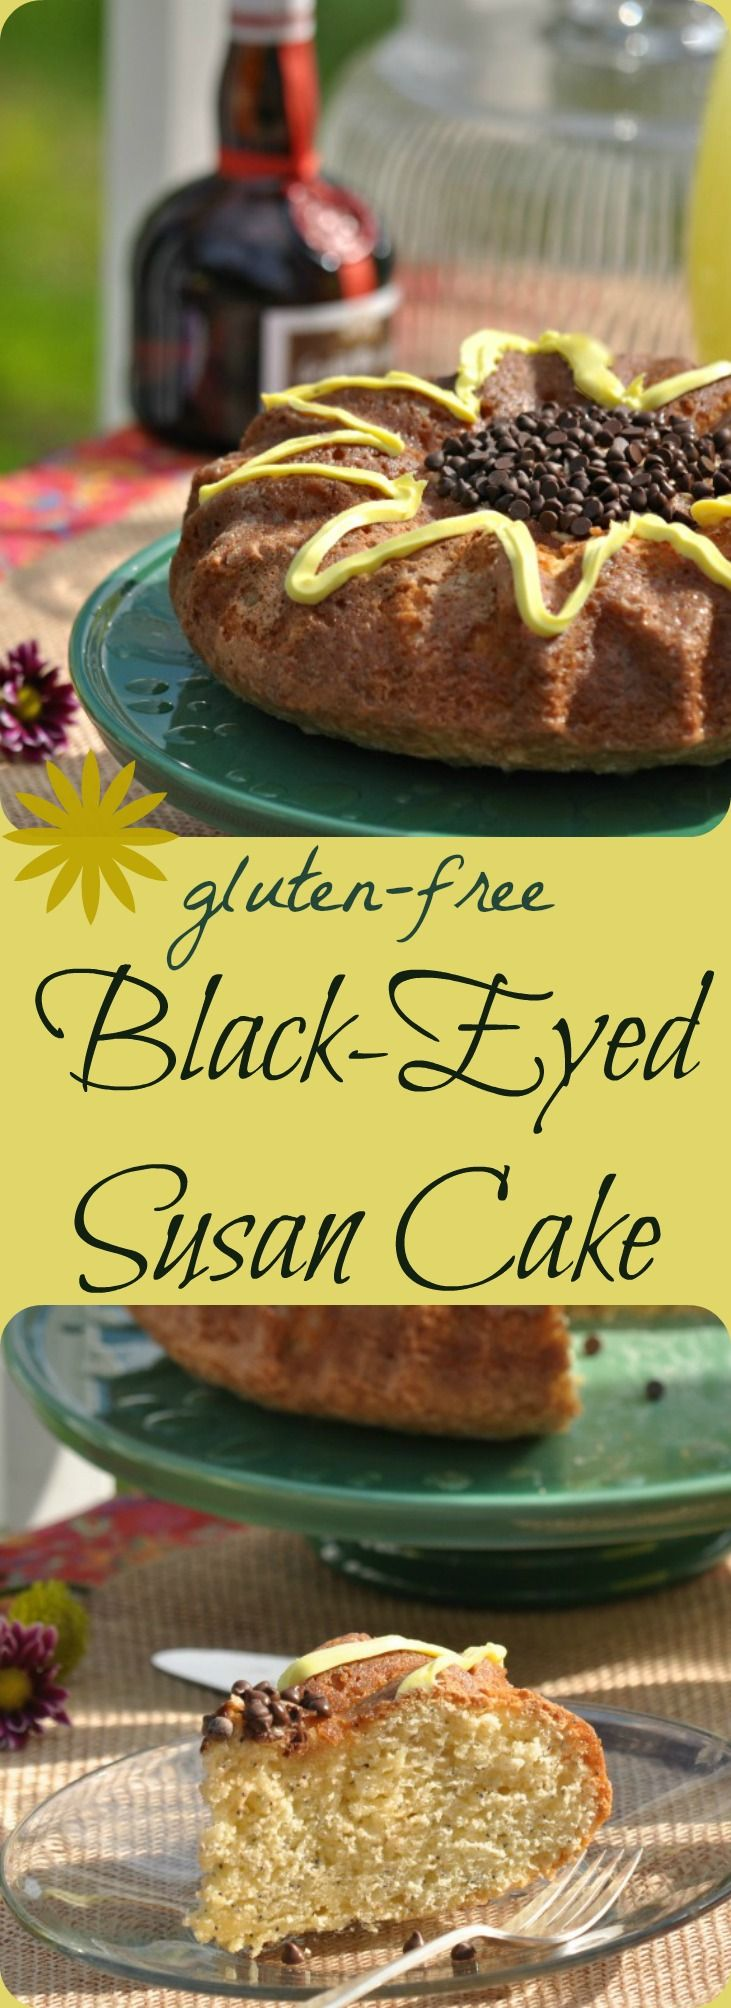 Gluten Free Black-Eyed Susan Cake - perfect for Derby Days, spring-time rainy days, hot summer days ... or anytime you'd love a slice of citrusy-delicious pound cake! Gluten-free Dairy-free |gfJules.com